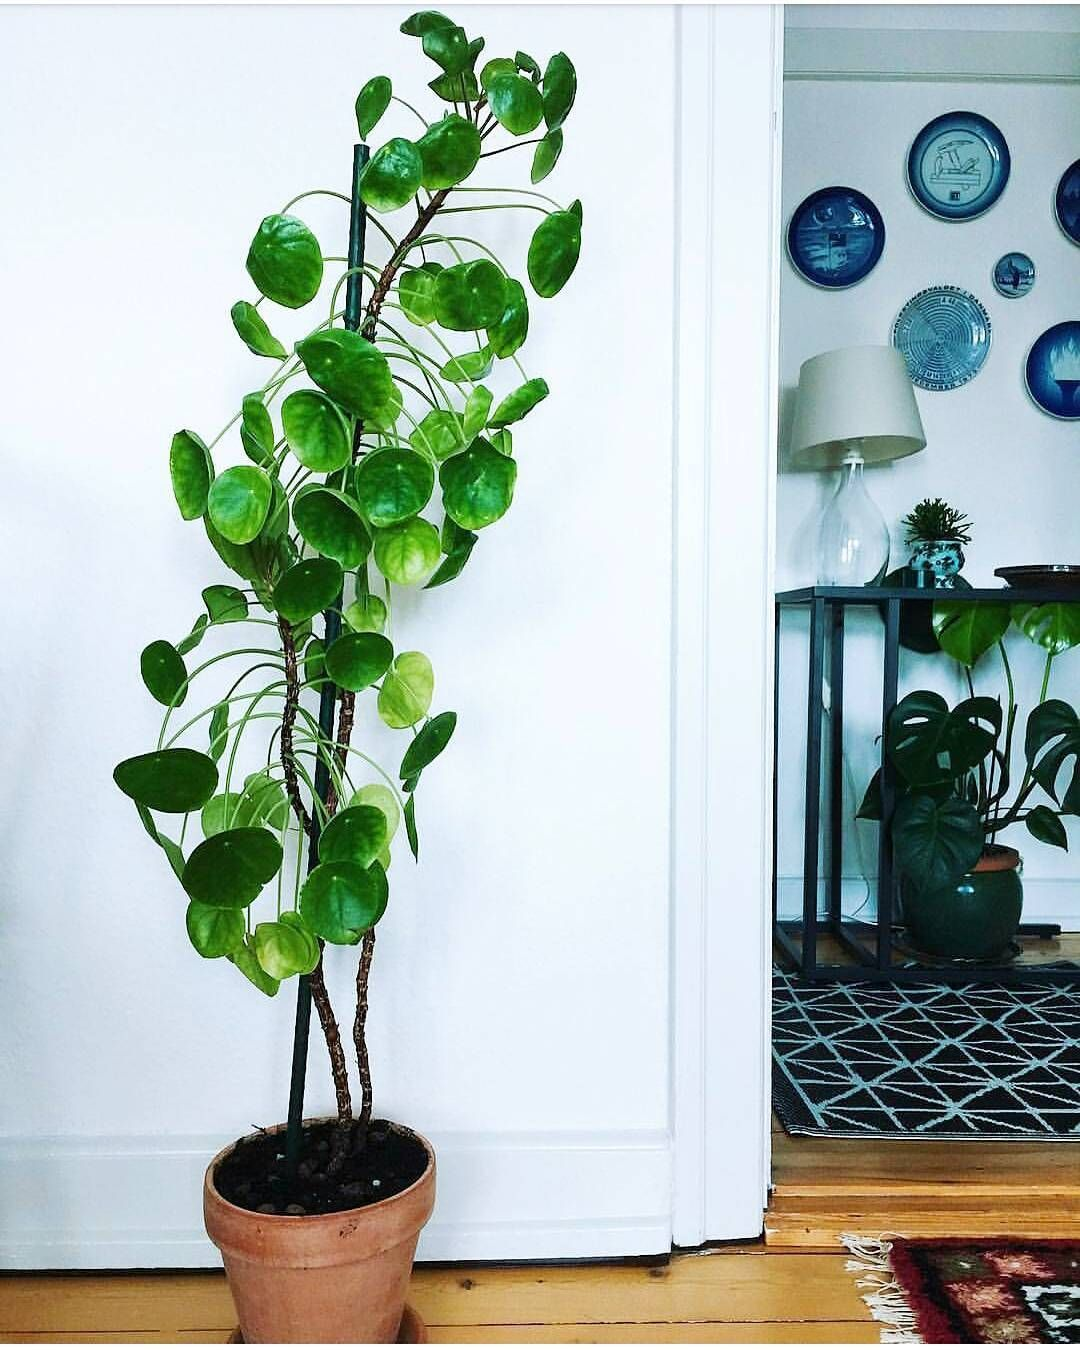 Houseplants Indoor Plants Plants Decor Home Decor Interior Style Plant Corner Pilea Peperomioides Nordic Style Scandinav Plants Plant Decor Chinese Money Plant